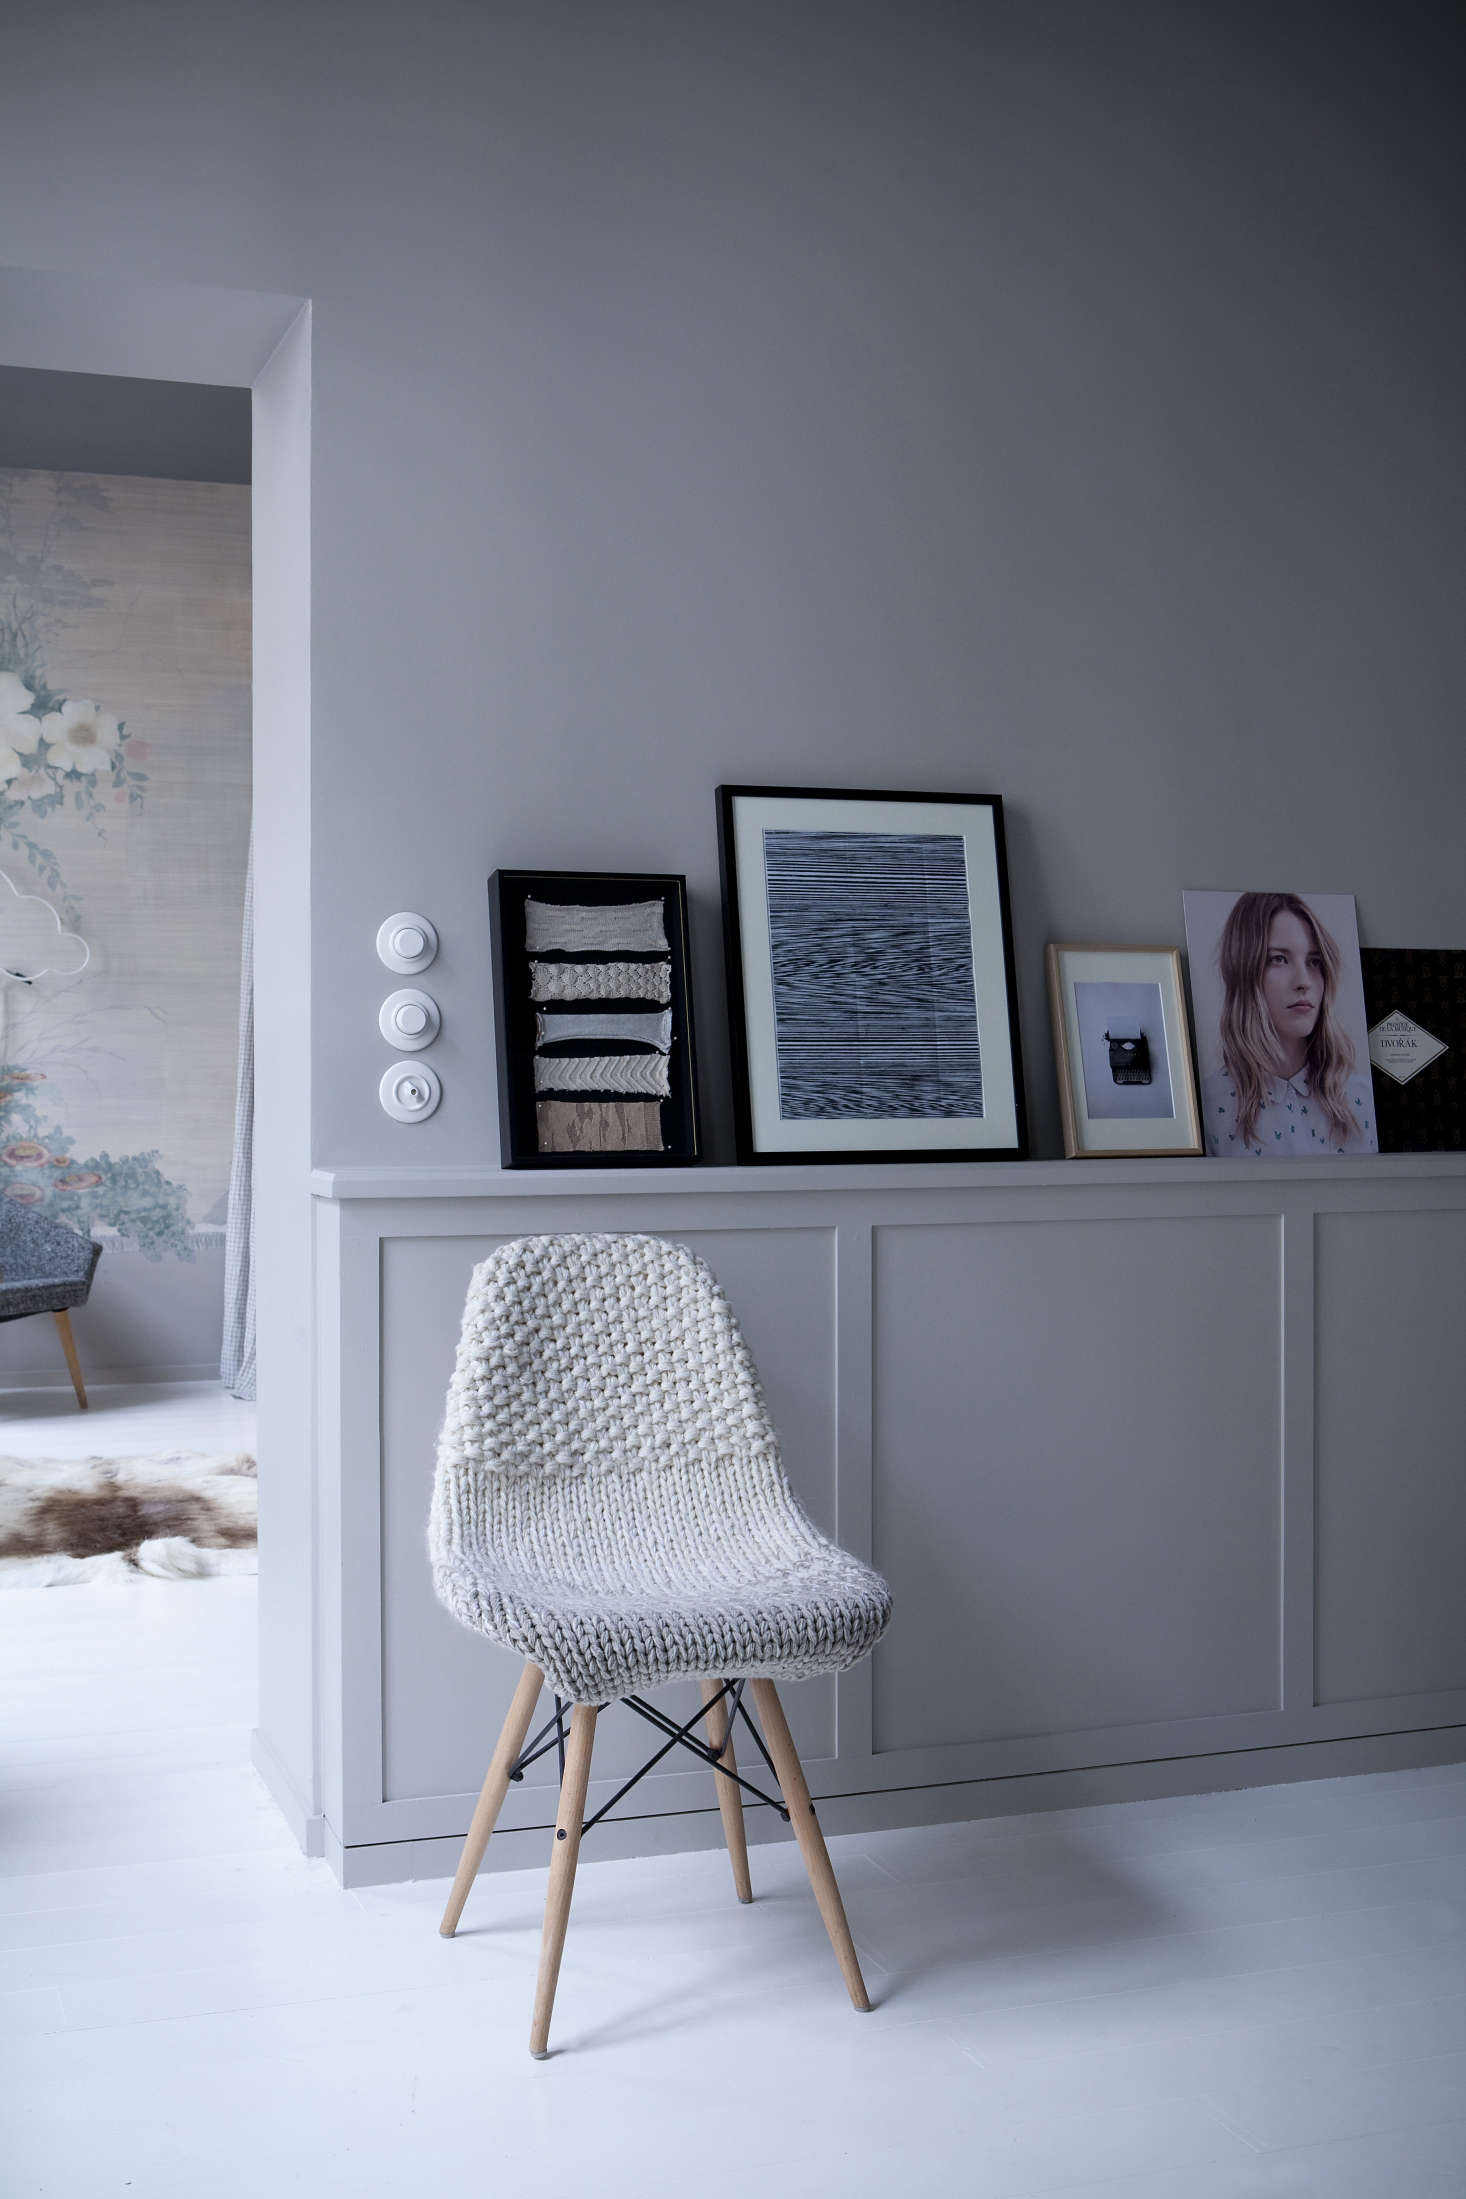 Eames side chair with knit slipcover at Chez Marie Sixtine, a guest apartment in Paris, Julie Ansiau photo   Remodelista